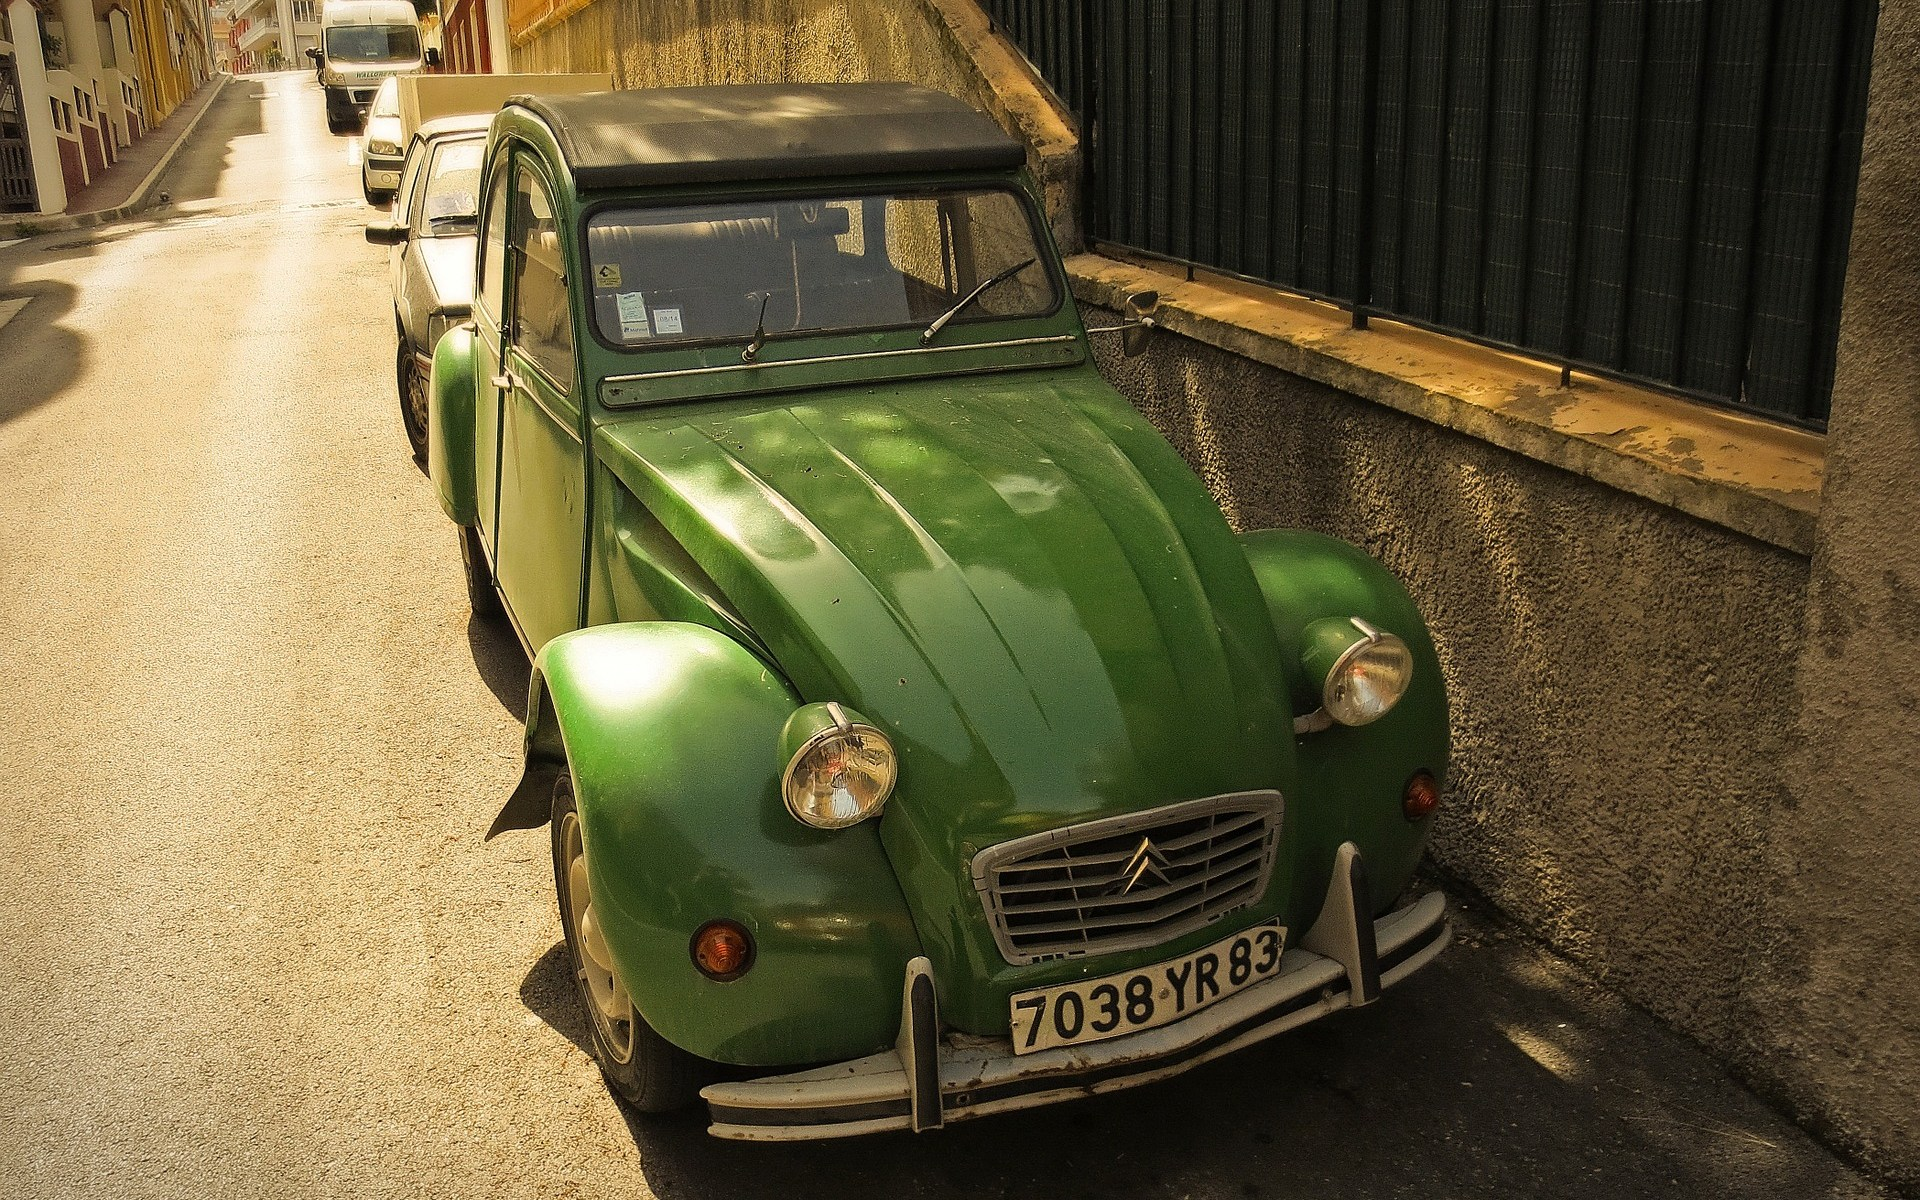 Citroën 2CV, a legendary French car